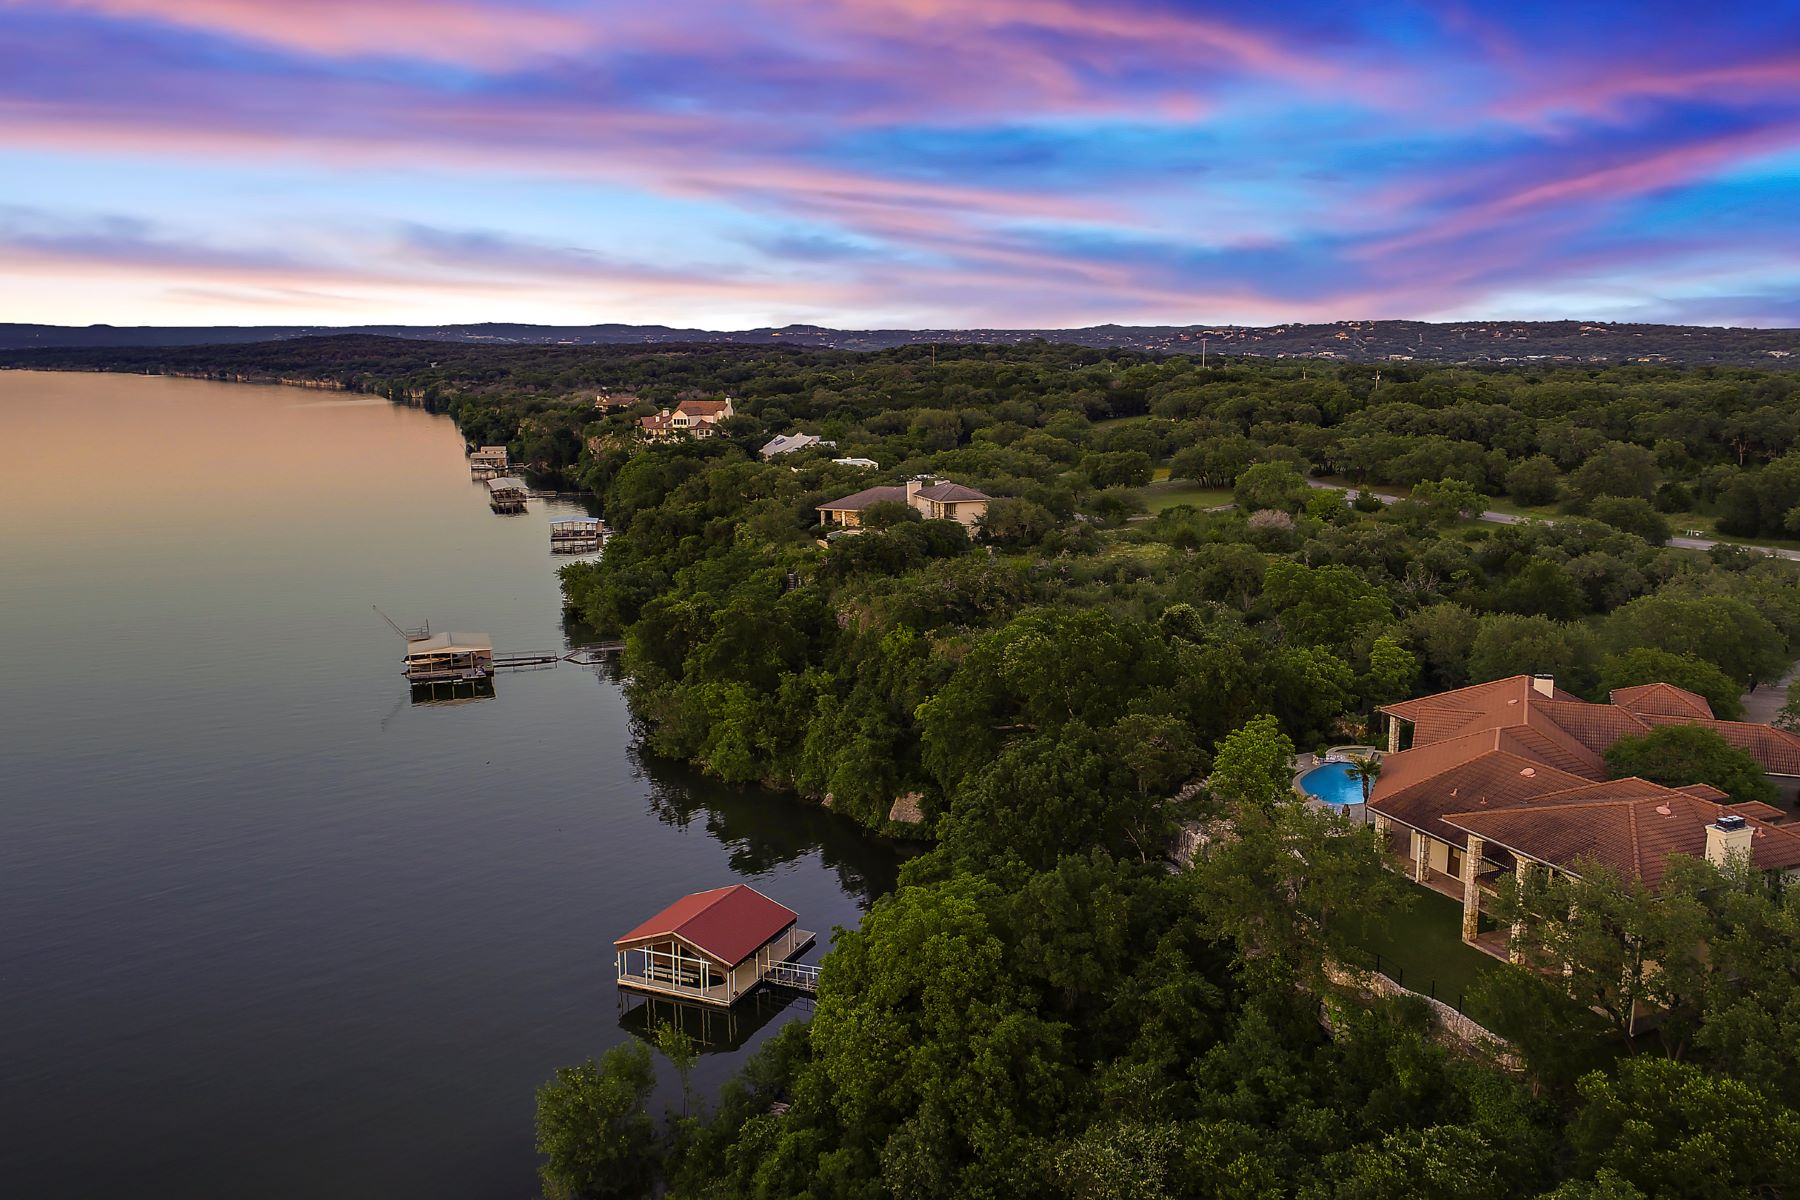 Single Family Homes for Sale at Unique Spanish-Style Waterfront Hacienda 1600 Las Entradas Drive Spicewood Spicewood, Texas 78669 United States